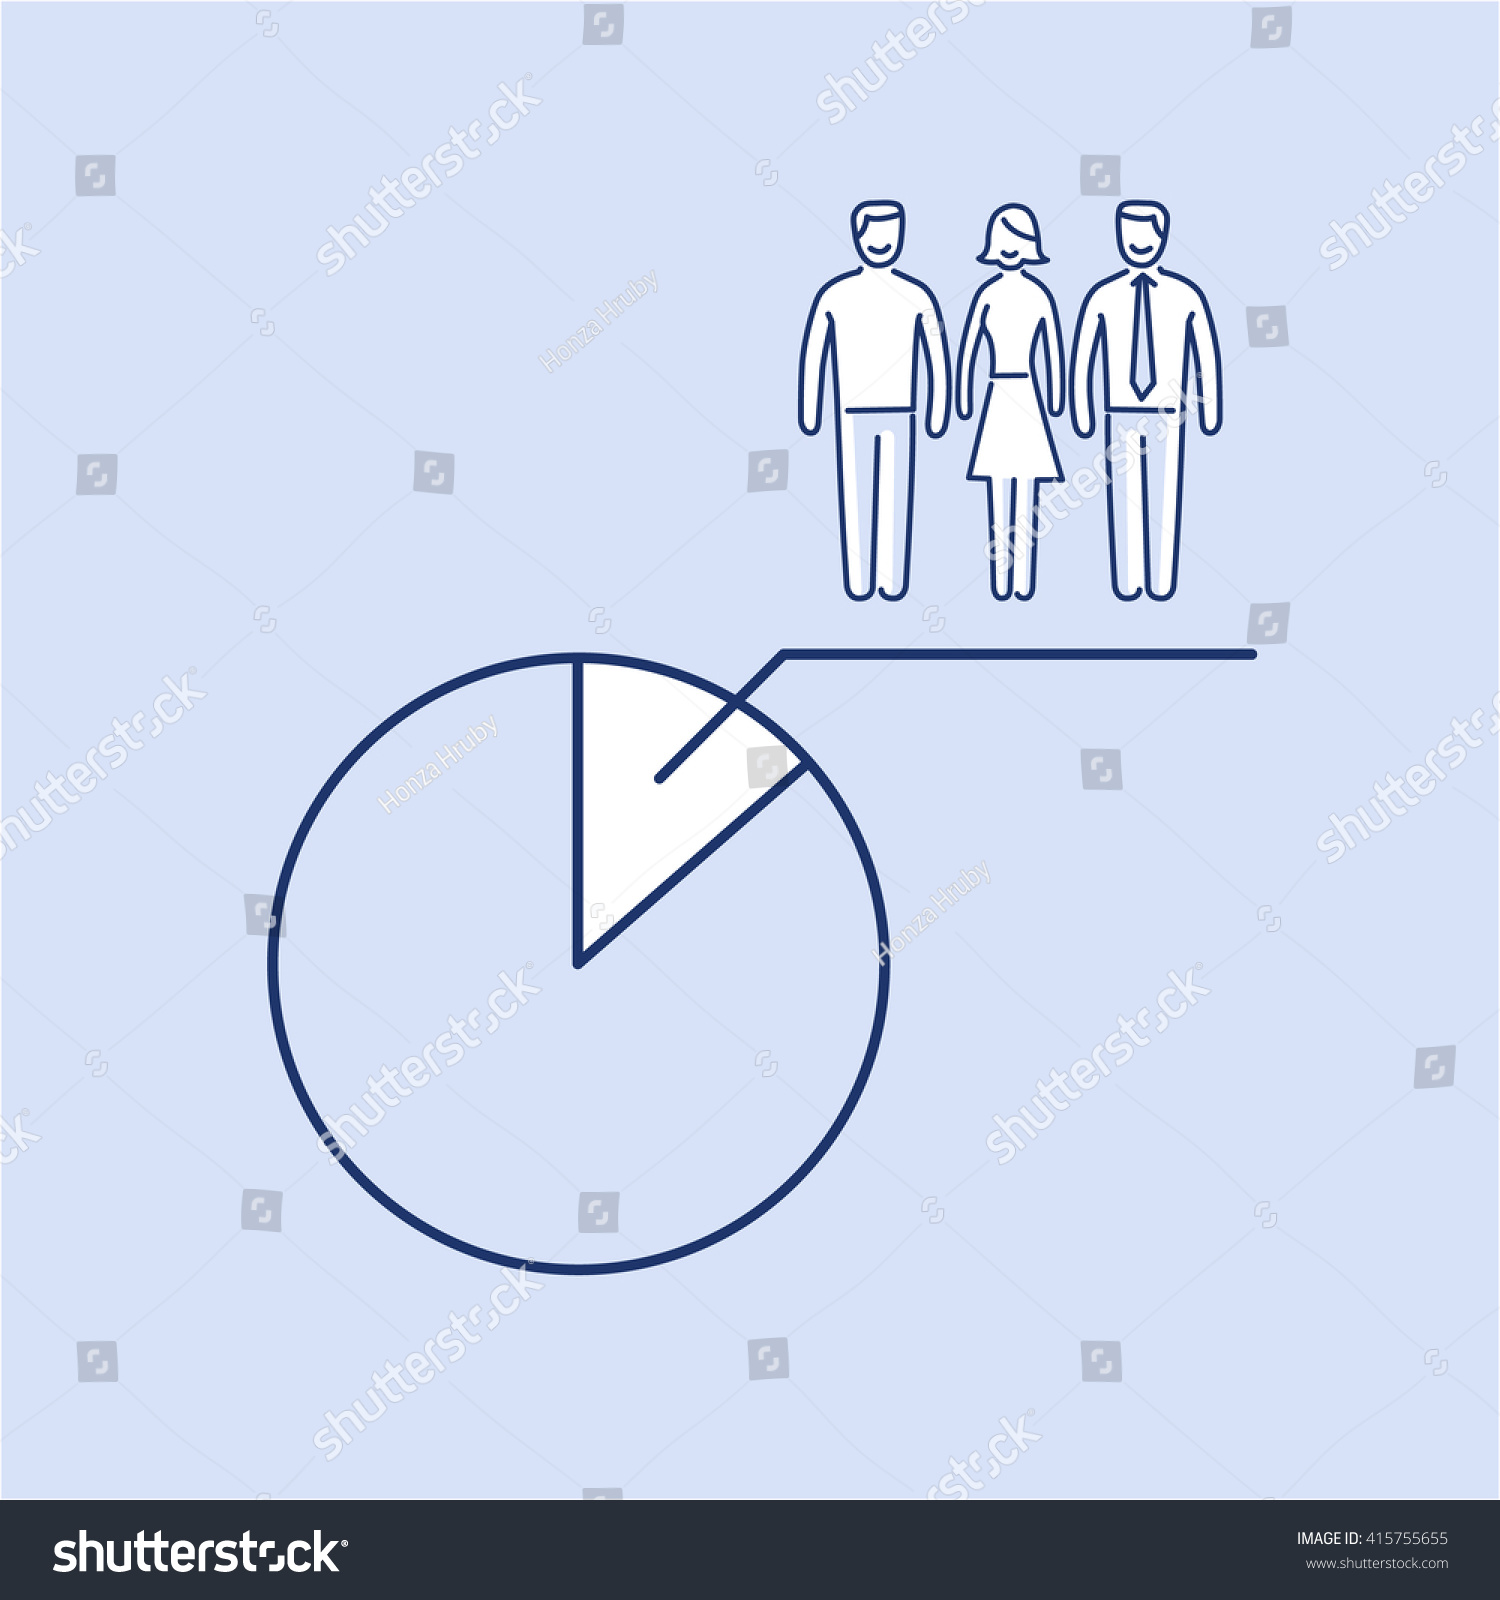 Sample of pie chart context flow diagram example conceptual vector population sample icon pie stock vector stock vector conceptual vector population sample icon with pie chart at focus group of people nvjuhfo Image collections